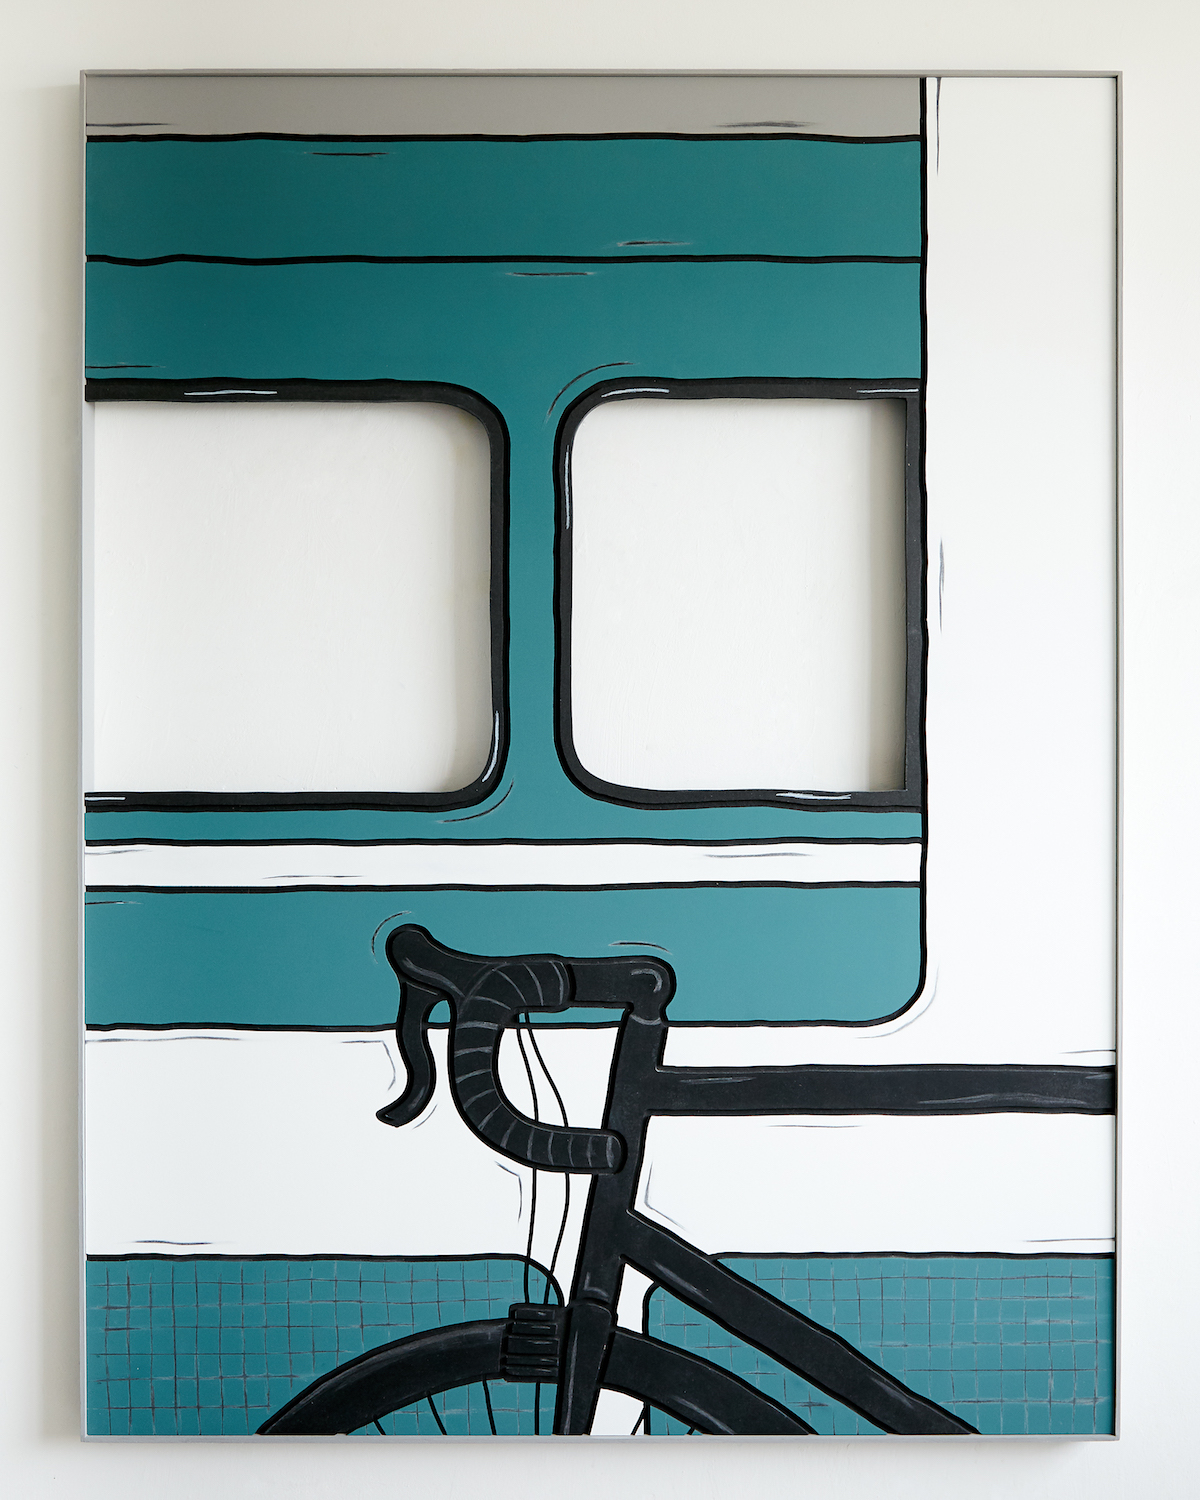 Milly Peck, Alternative Means of Travel, 2020. Emulsion on Valchromat, coloured pencil, wood. 113 x 86 x 4 cm.